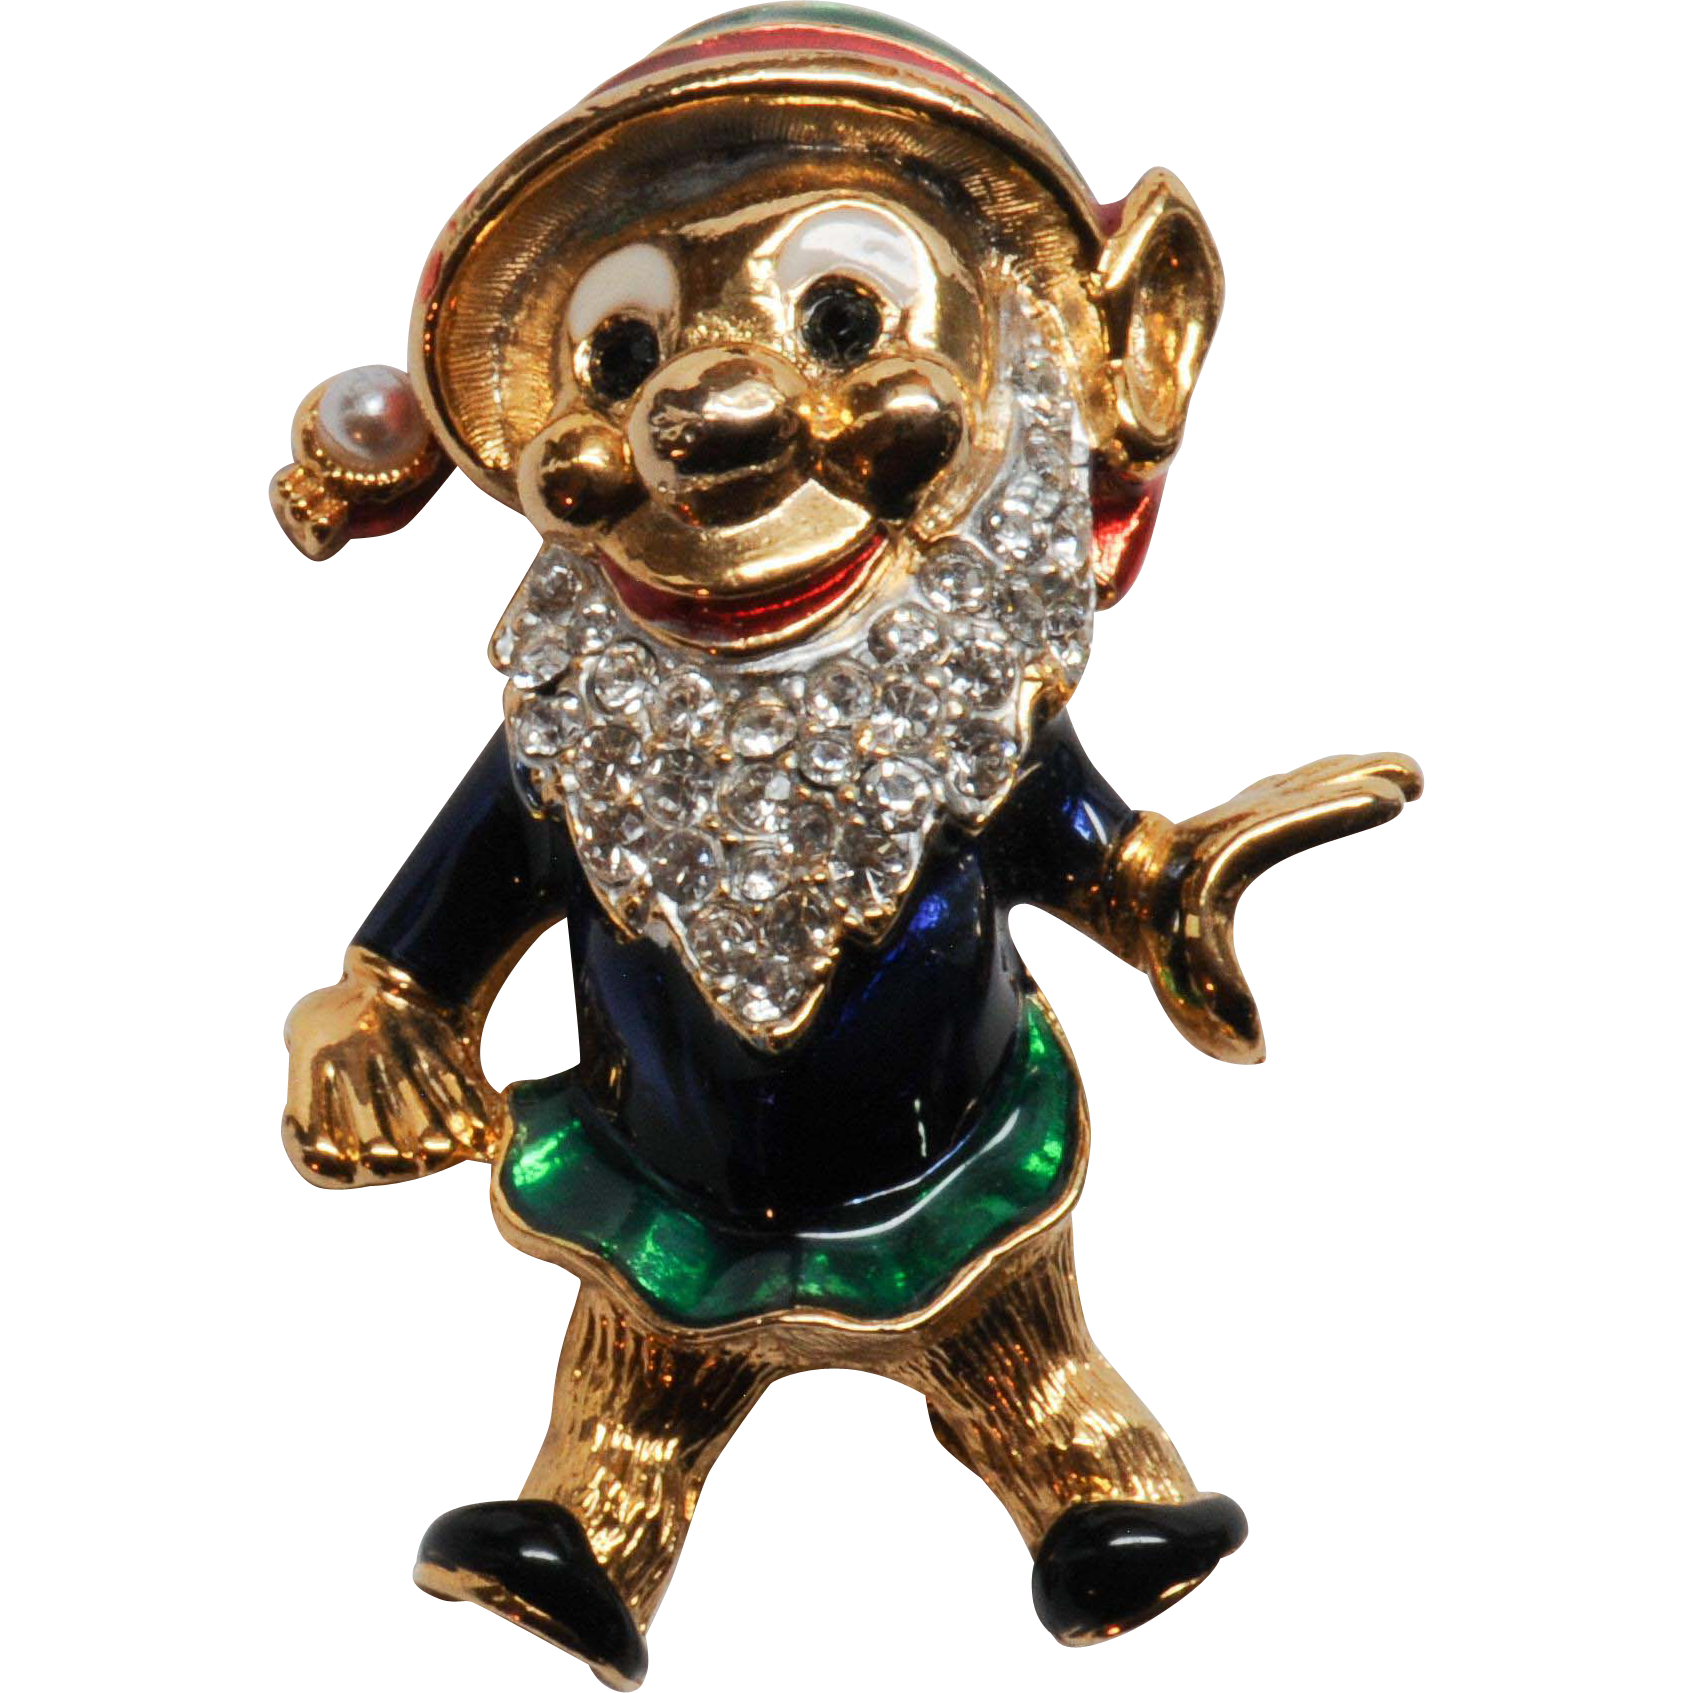 Butler and Wilson Gnome, Elf or Dwarf Pin